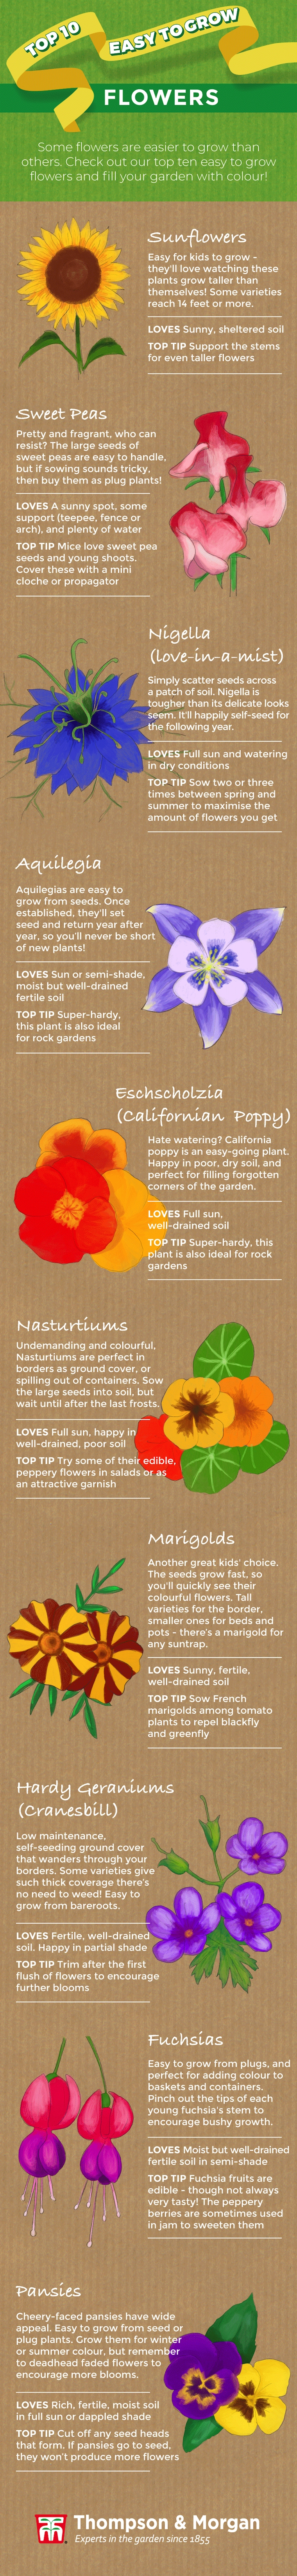 Top 10 Easy To Grow Flower Plants And Seeds For Beginners for Garden Flowers Easy To Grow